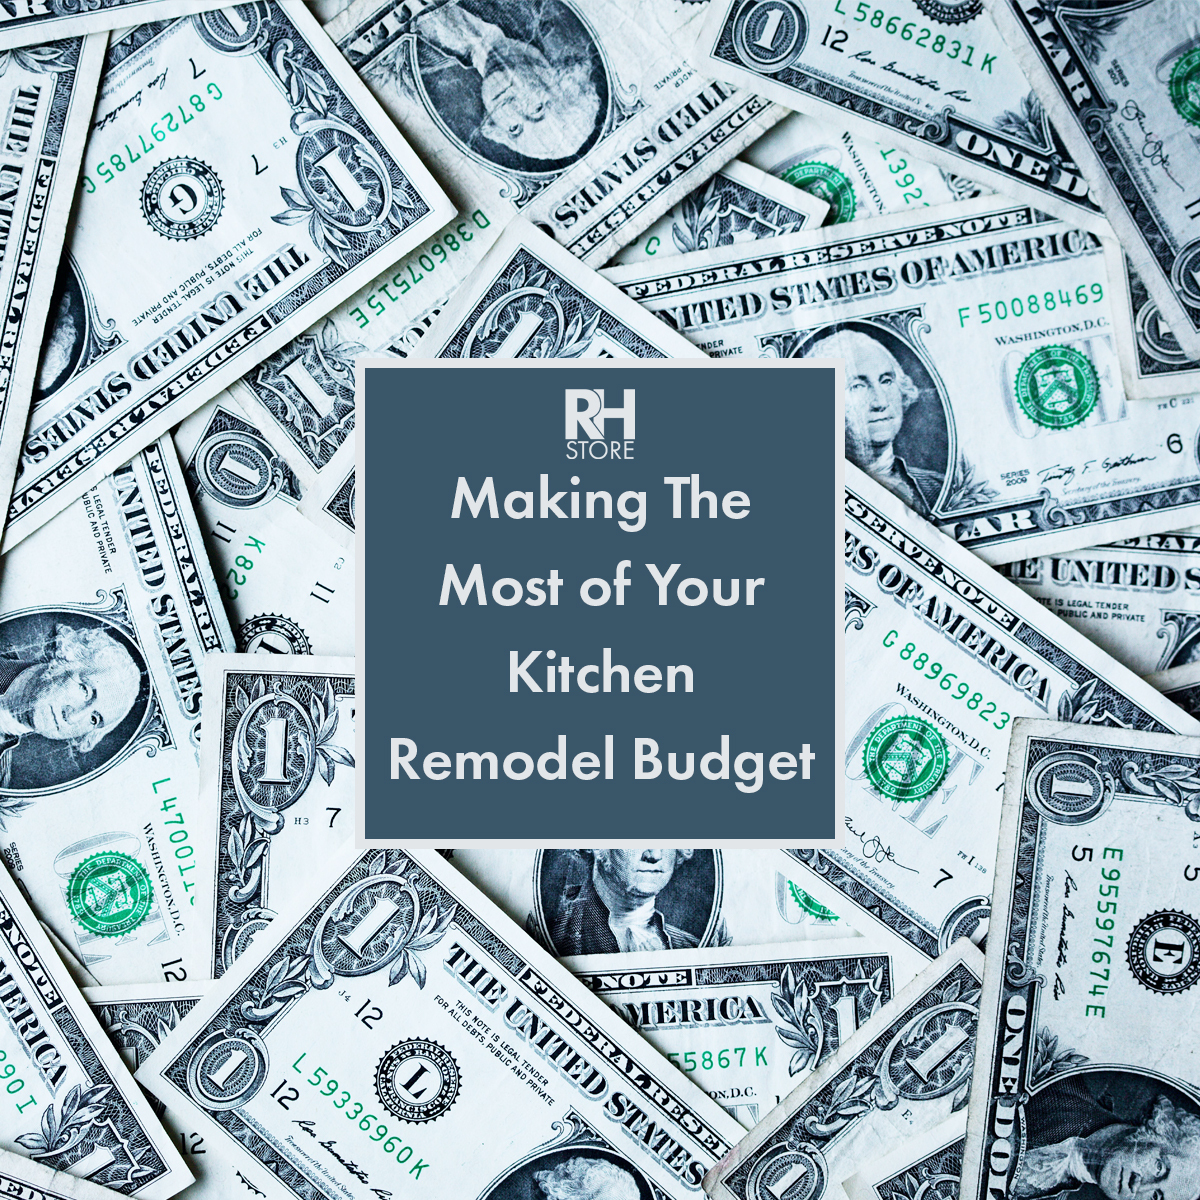 Making The Most of Your Kitchen Remodel Budget